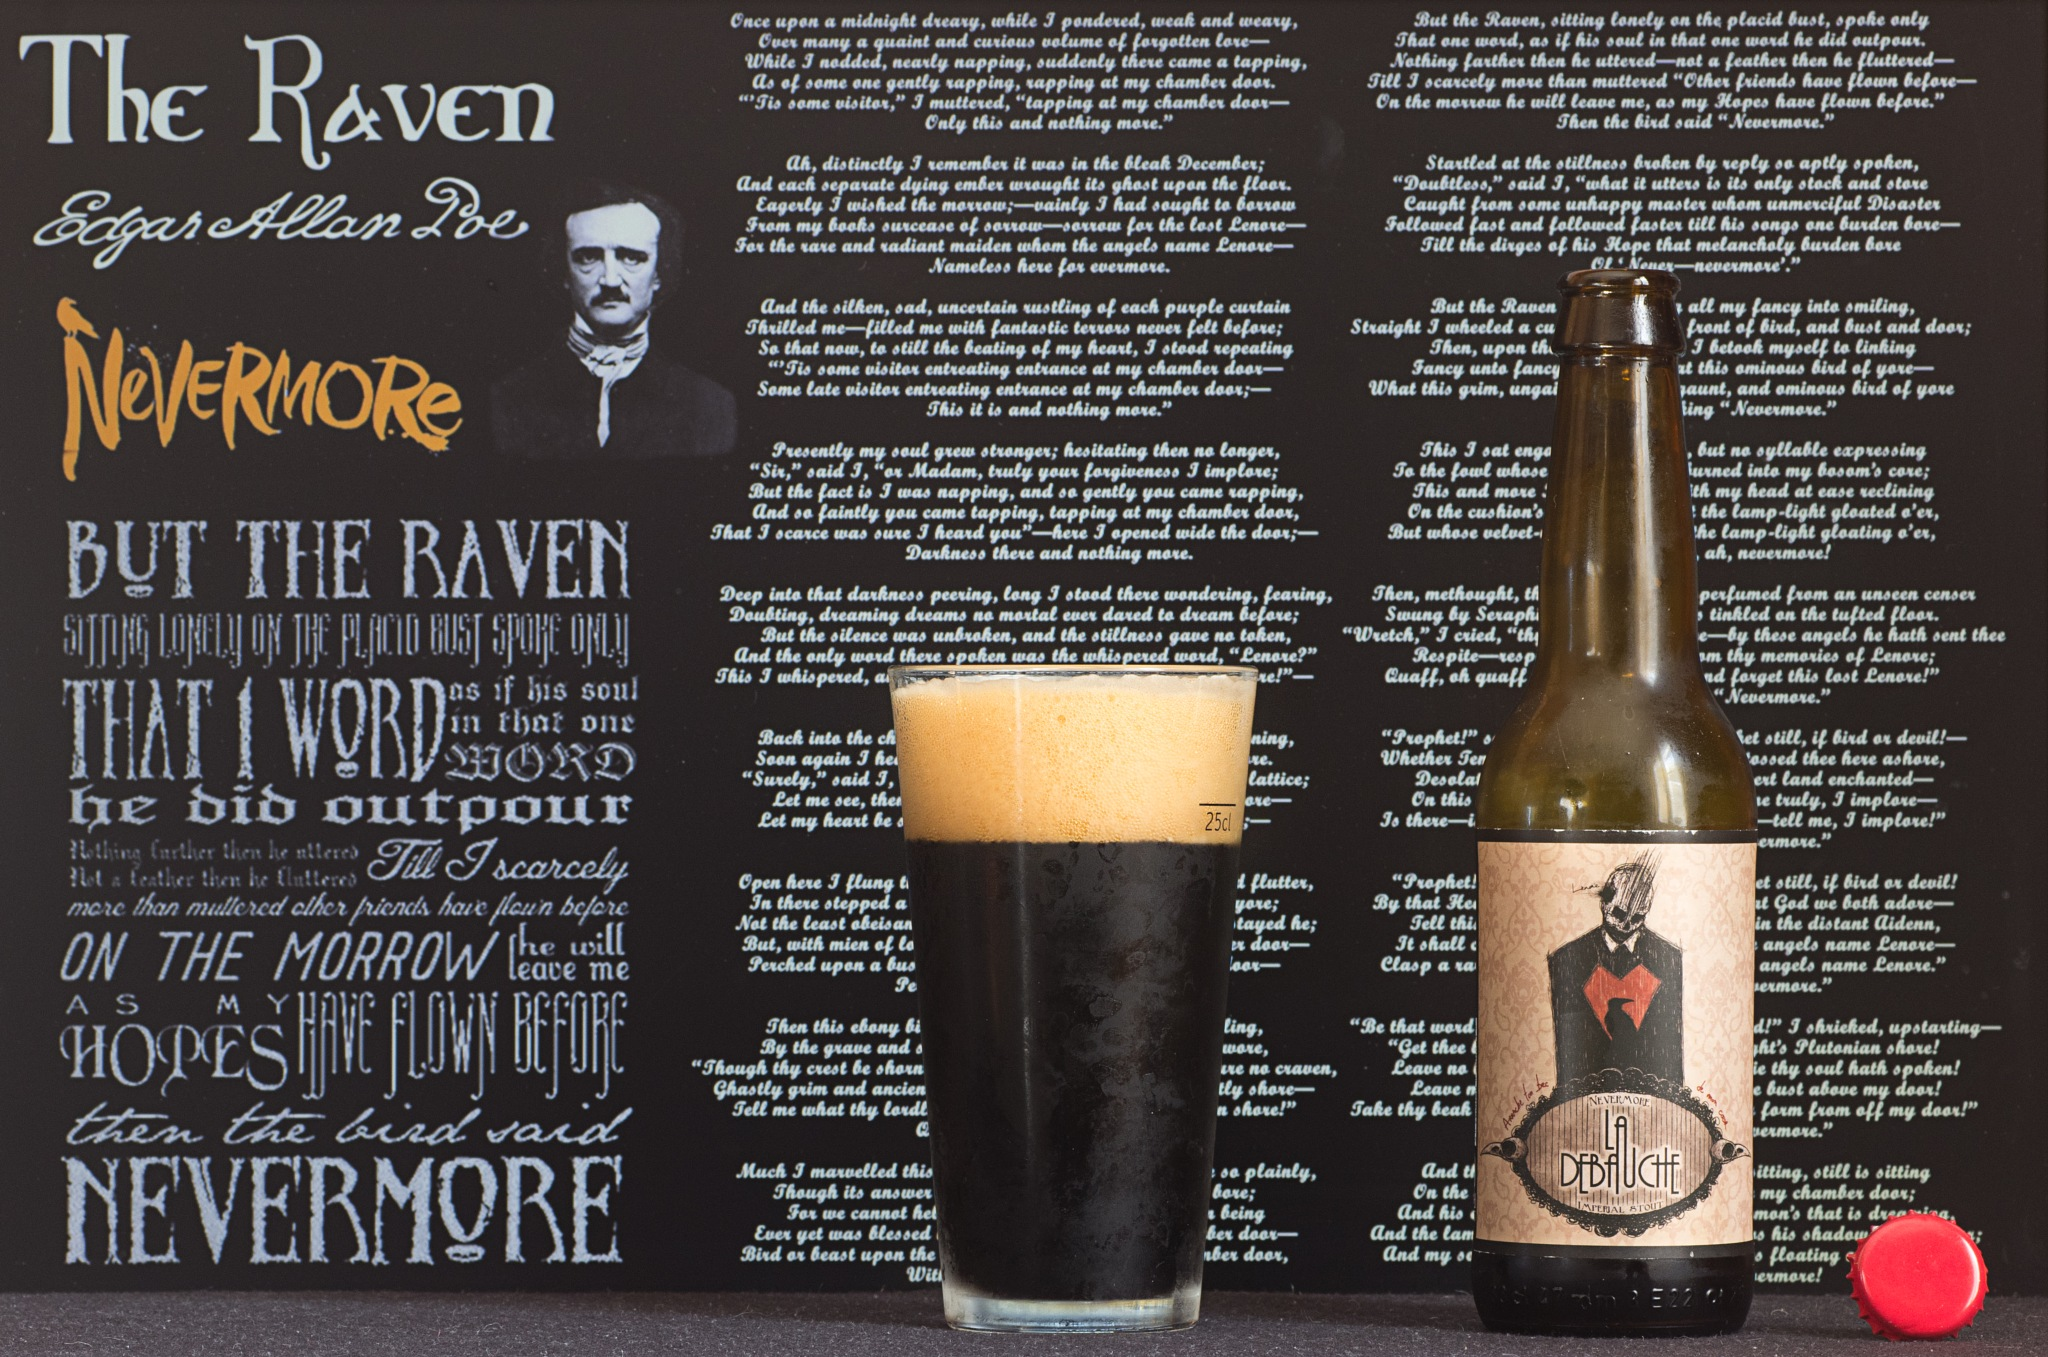 Nevermore by Franck Rouanet